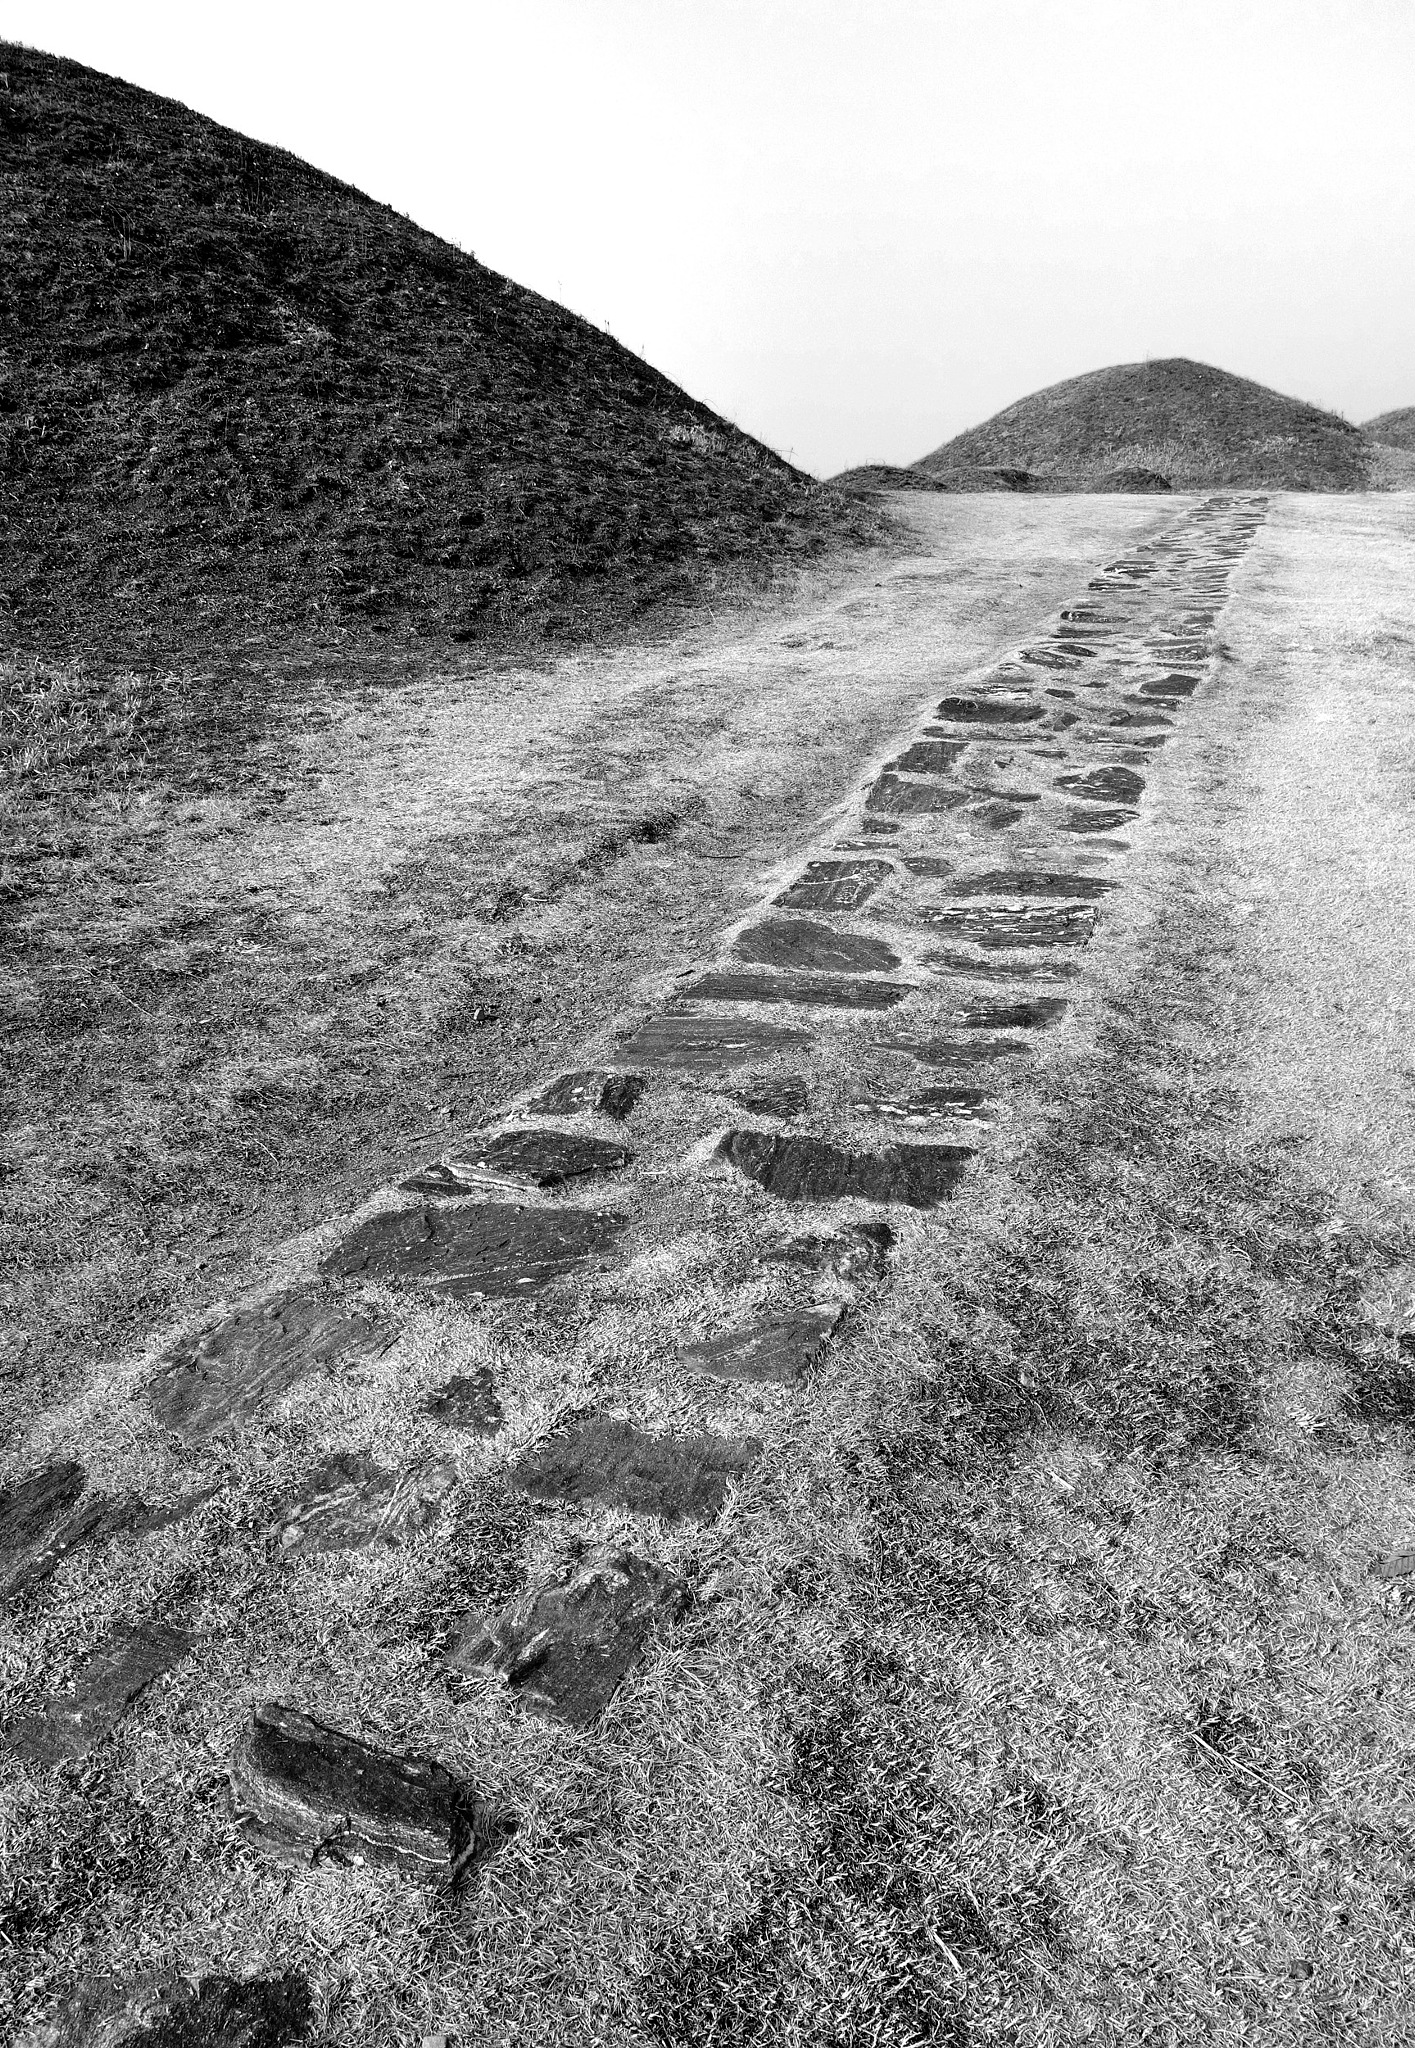 Path among the Tombs by Steve Garrigues